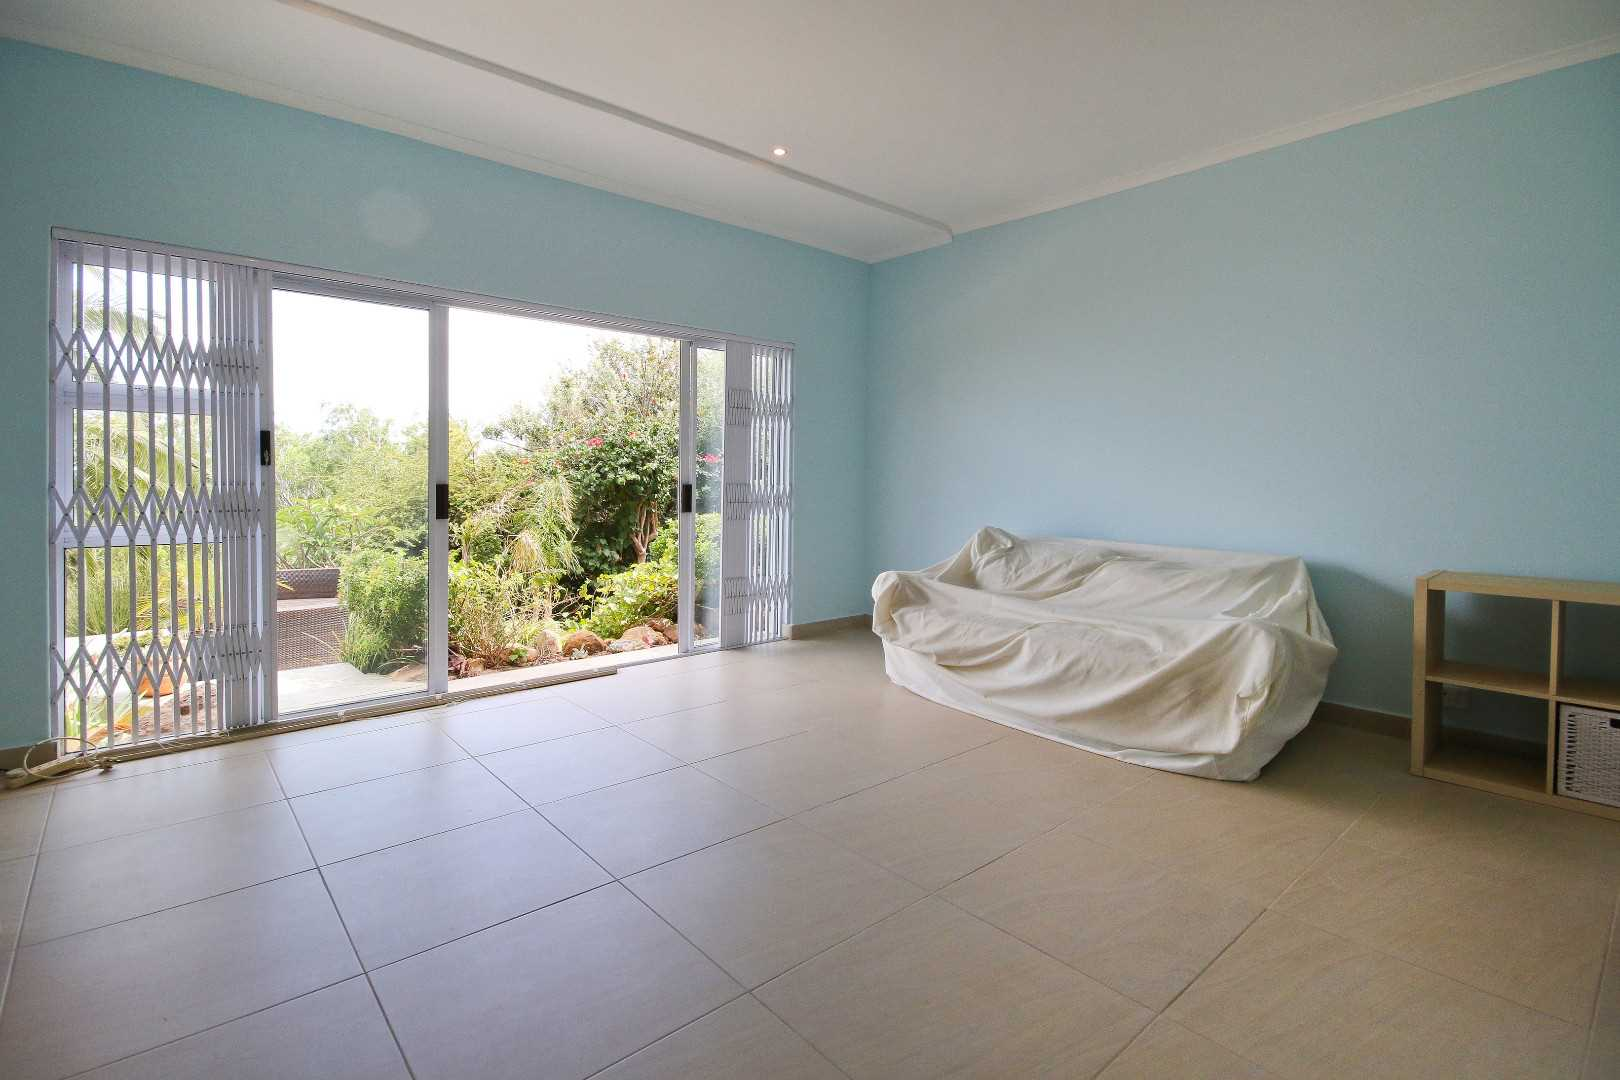 Sliding doors from bedroom lead to private garden and pool